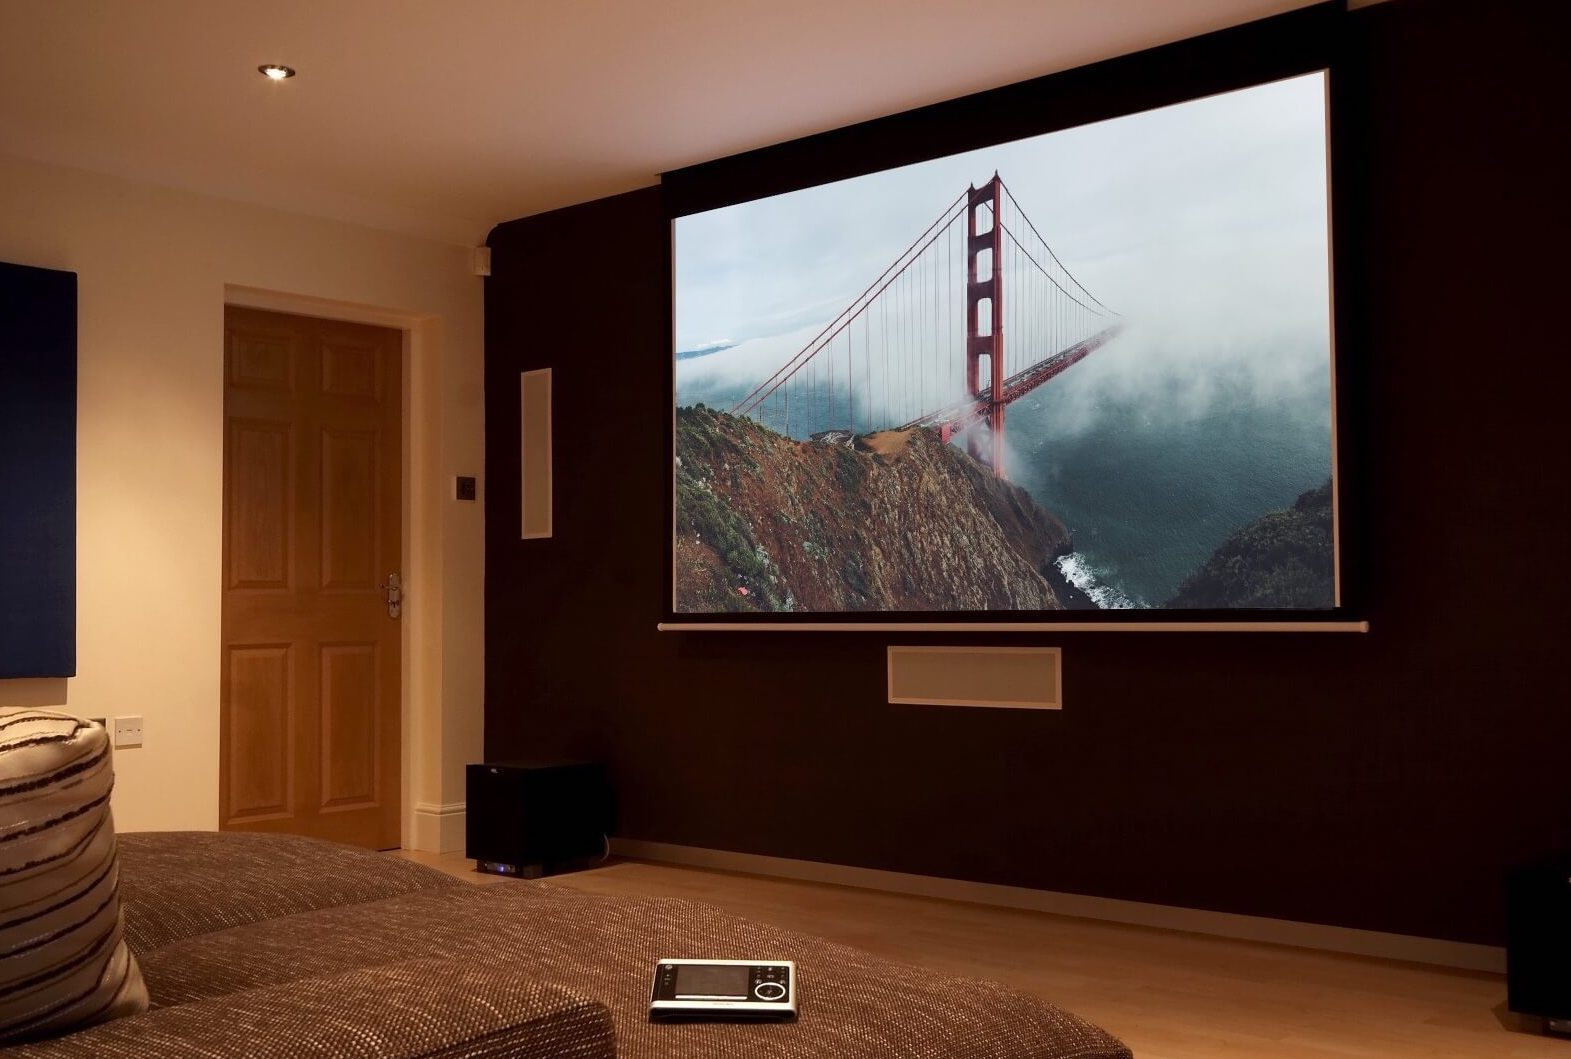 Buy A Tv 3 Reasons To Buy A Projector Instead Of A Flat Screen